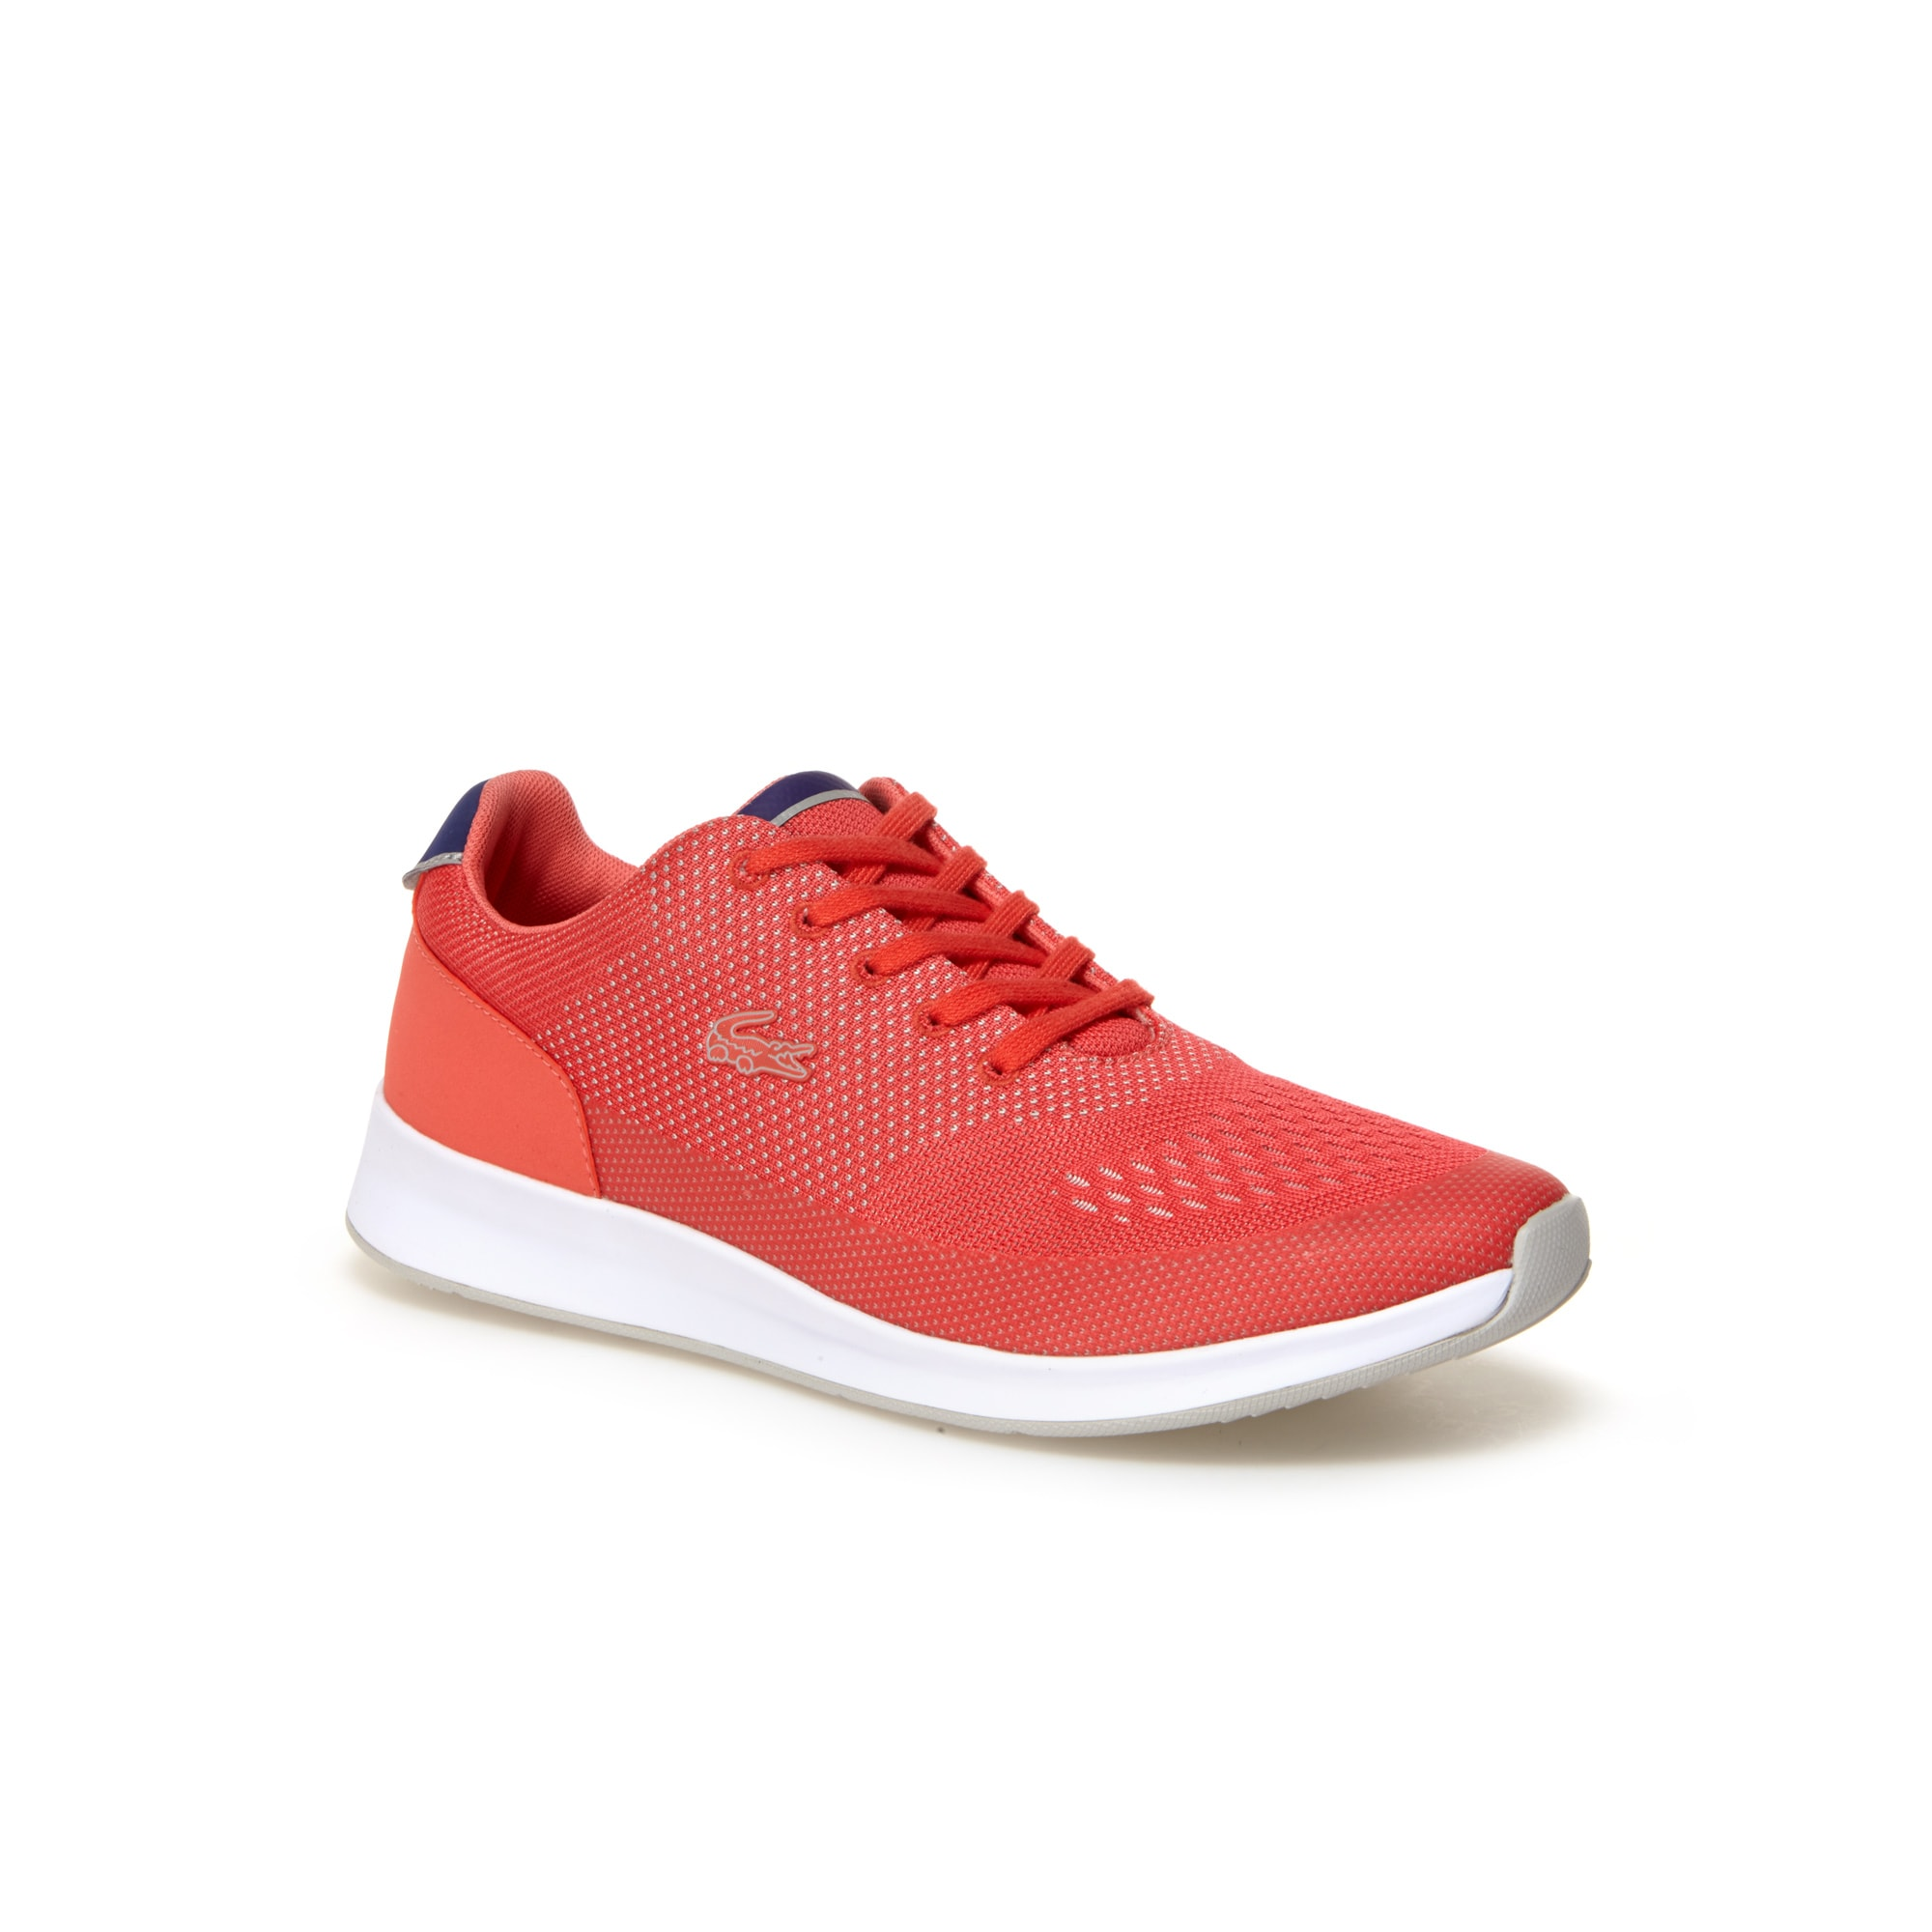 Women's Chaumont Textile Graphic-print Trainers